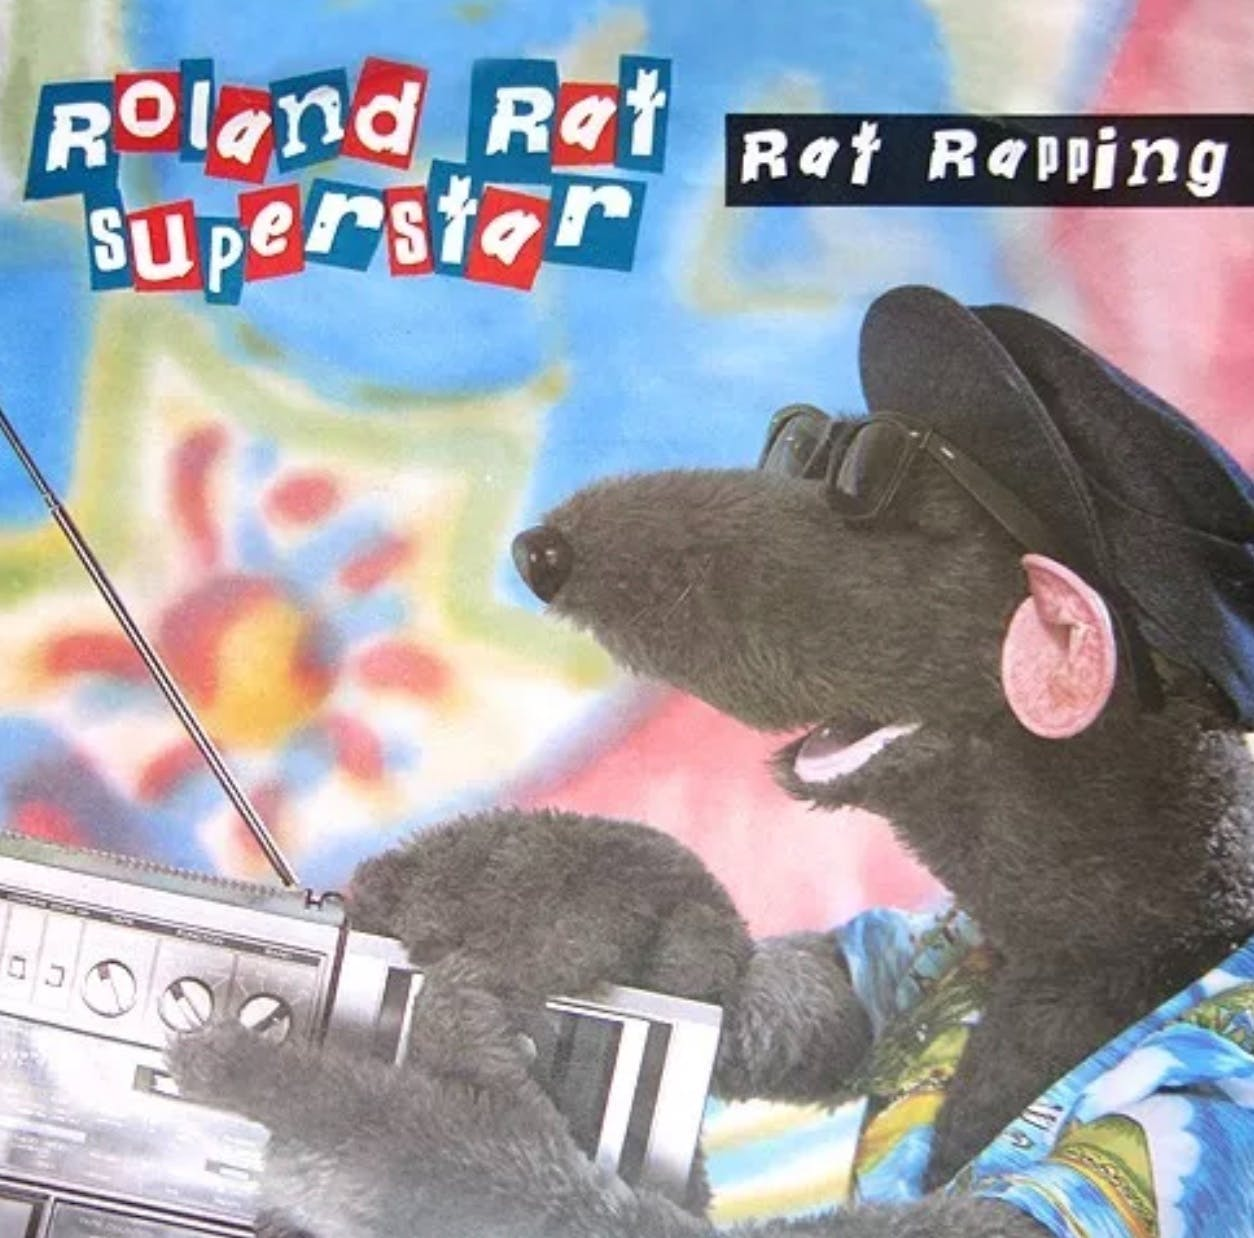 Roland Rat, Rat Rapping single